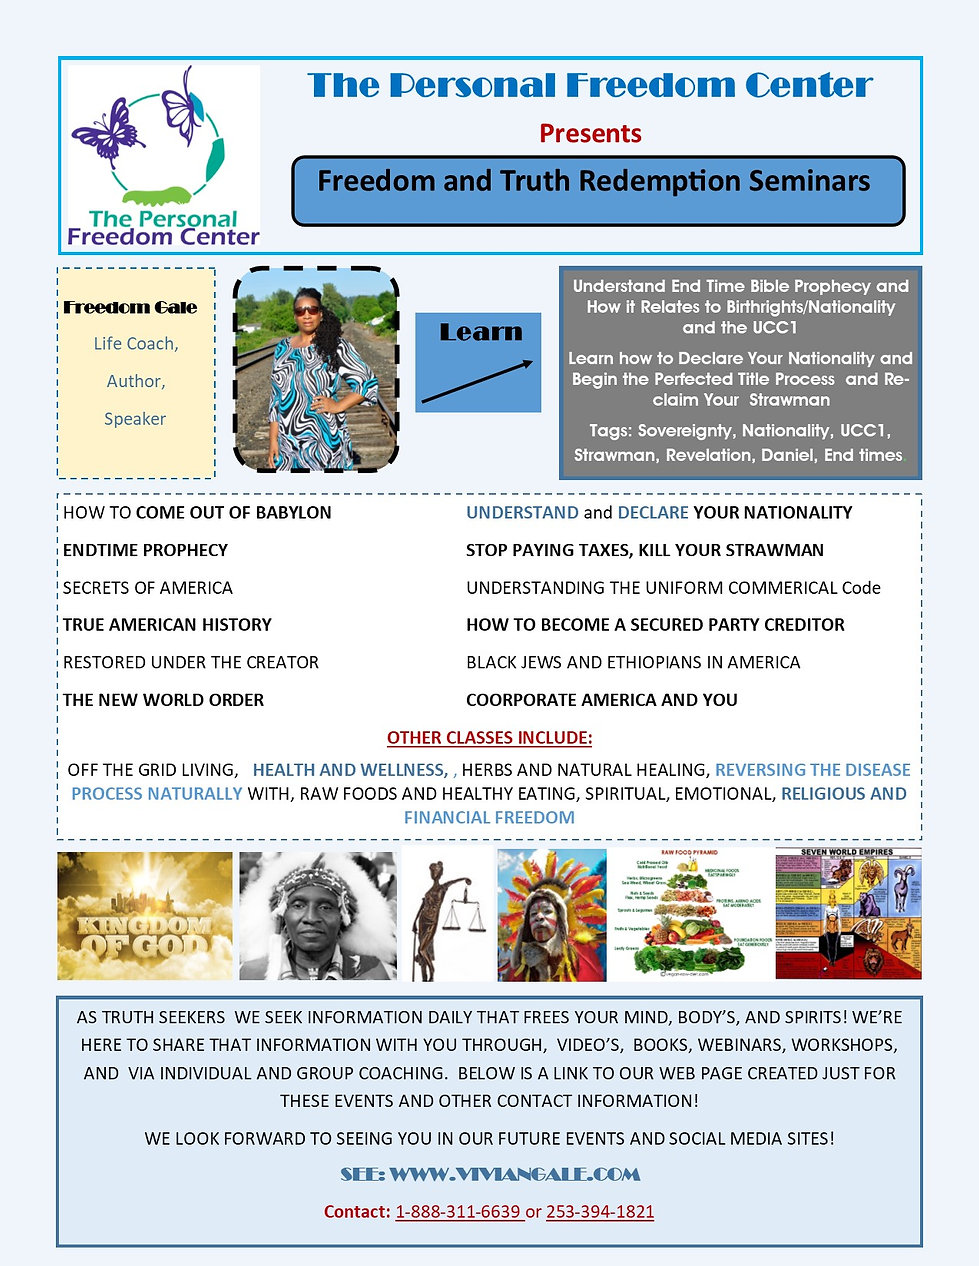 Freedom and Truth Redemption Seminar.jpg